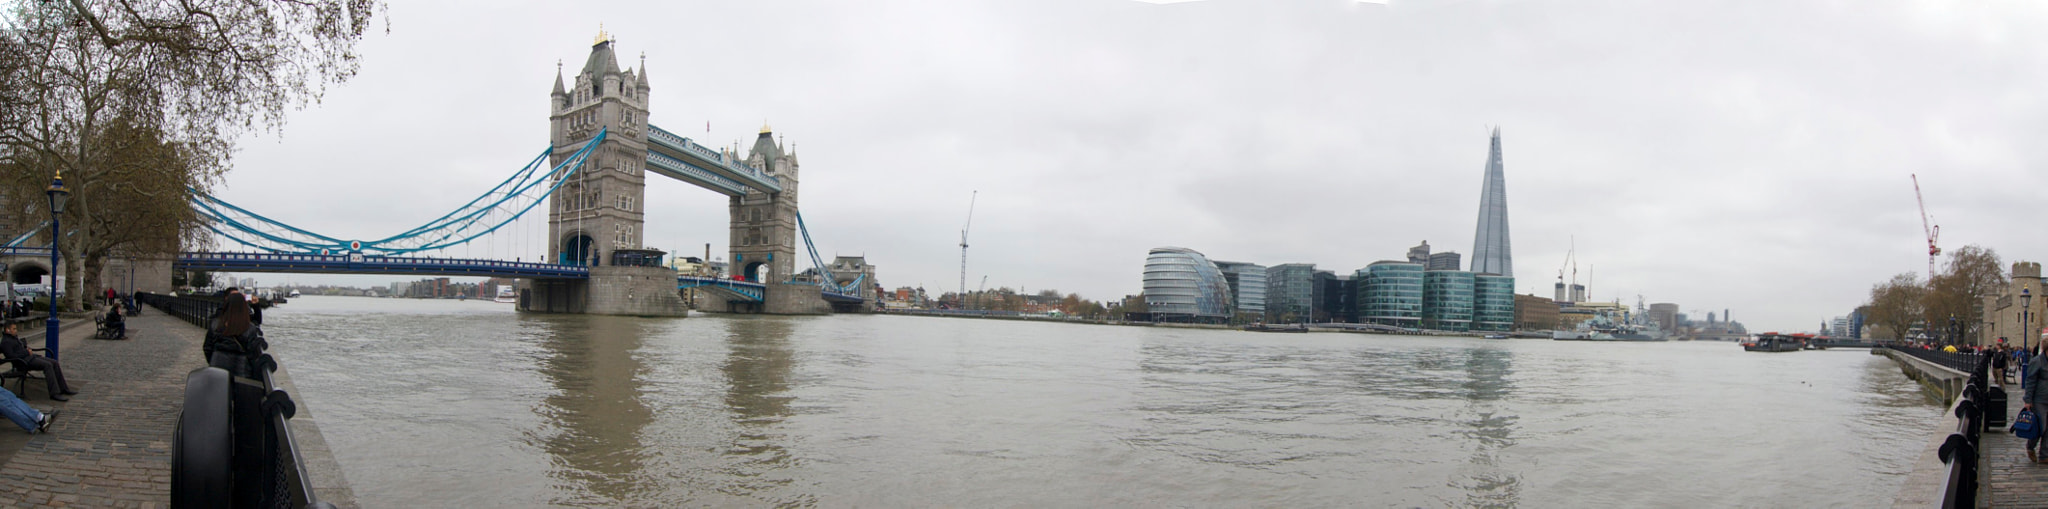 Photograph Pano of Thames River by Ron Kaplan on 500px